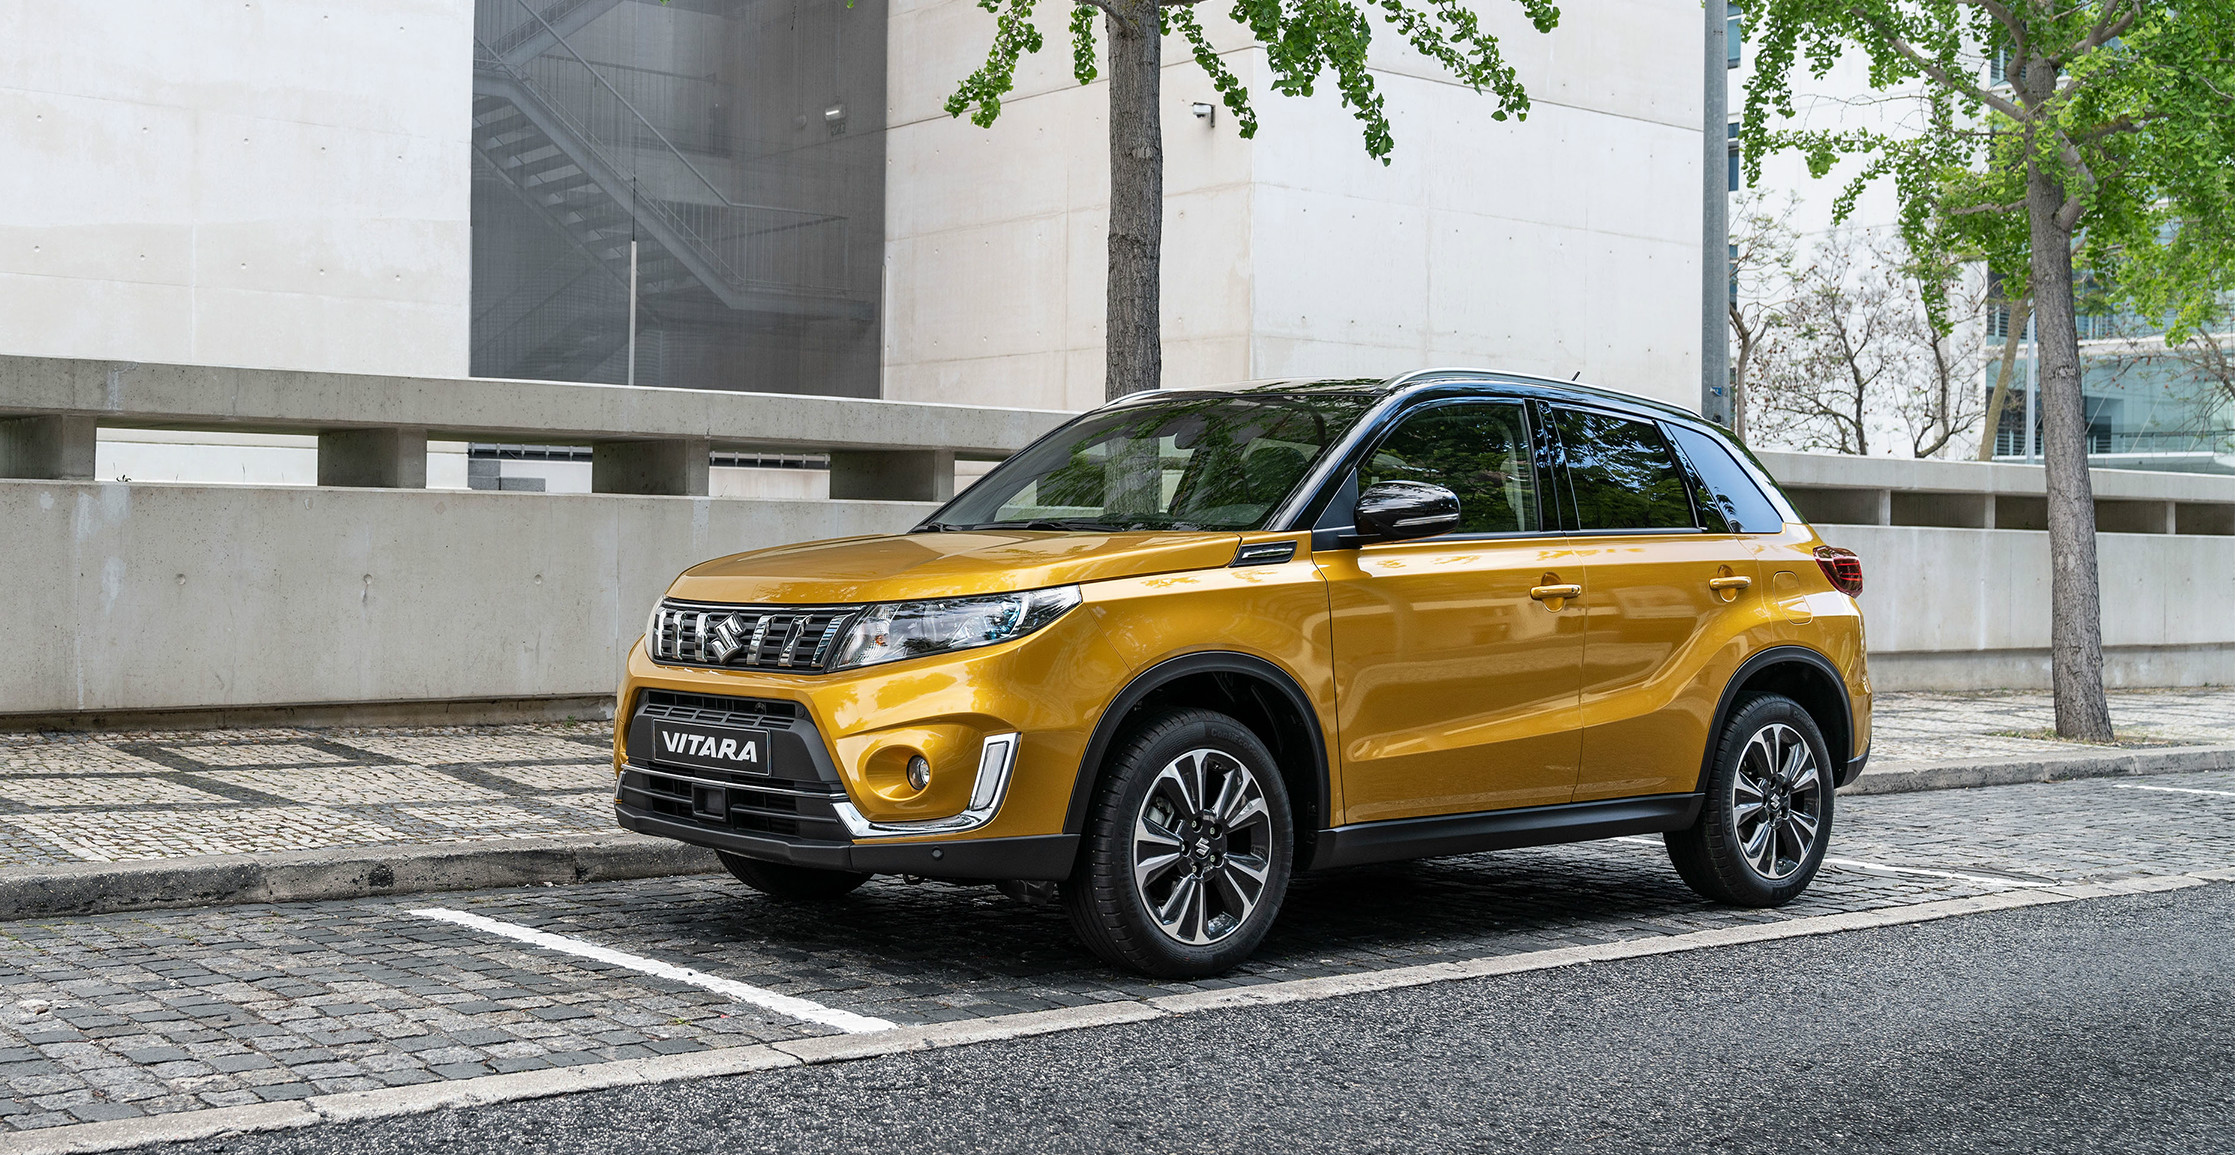 The most popular model in the Suzuki car range has been updated for model-year 2019 with numerous visual, technical and specification upgrades.